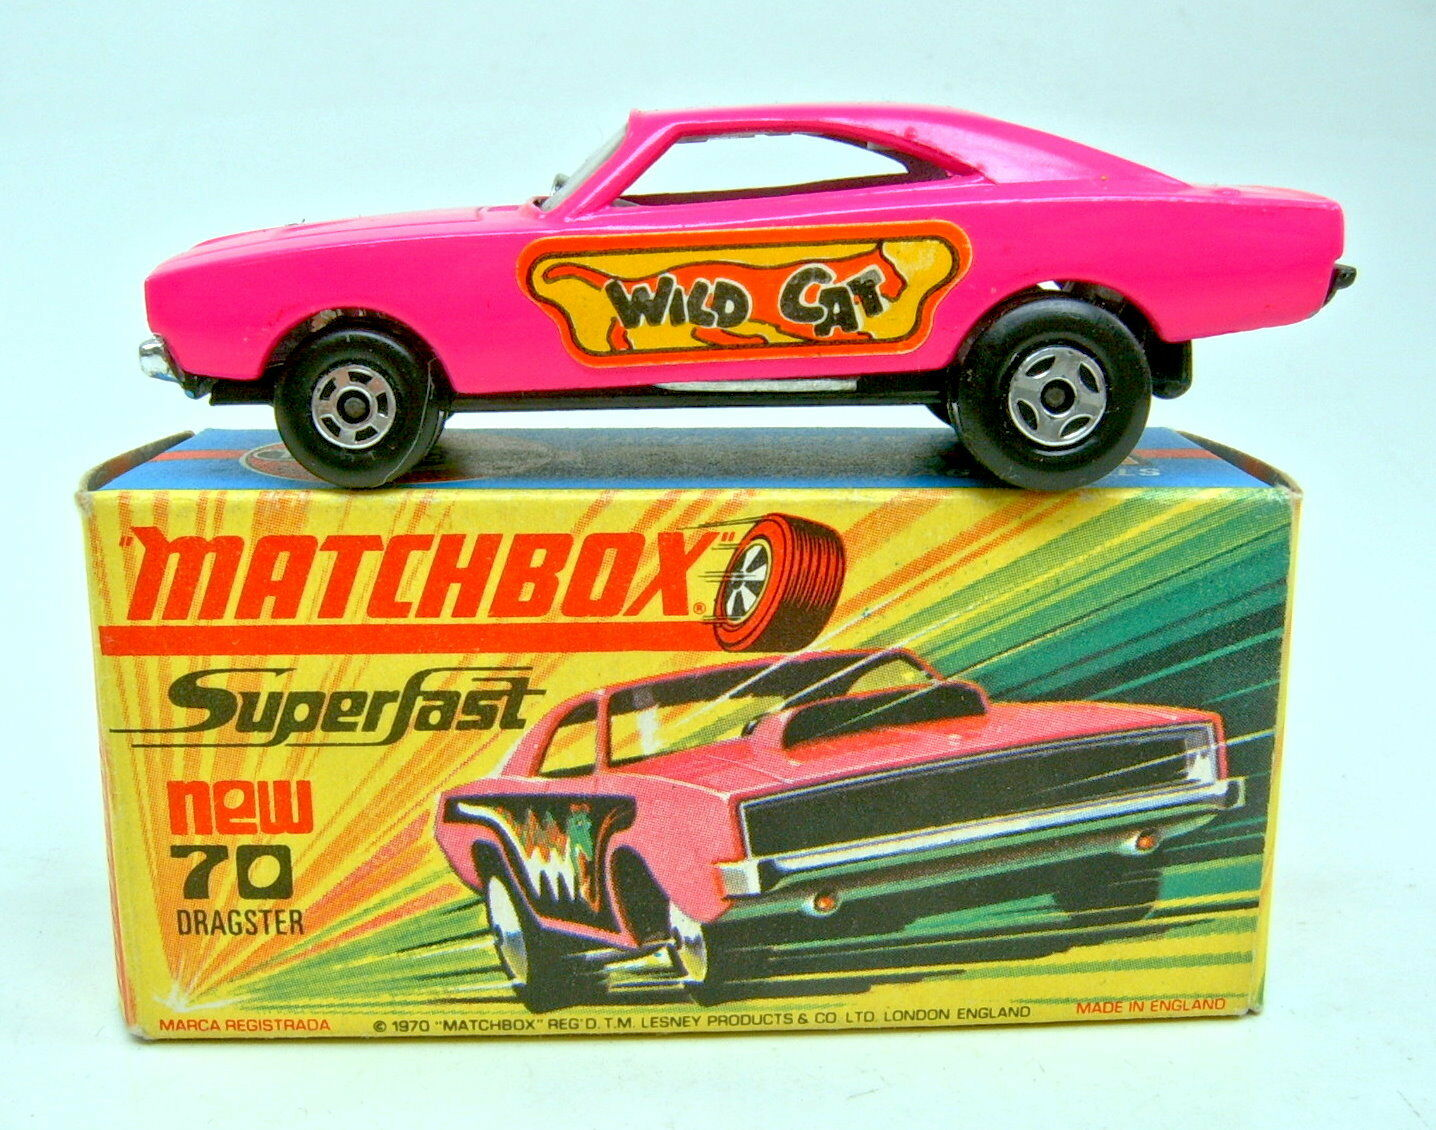 Matchbox Superfast nº 70b Dodge dragster escasos  Wild Cat  pegatinas